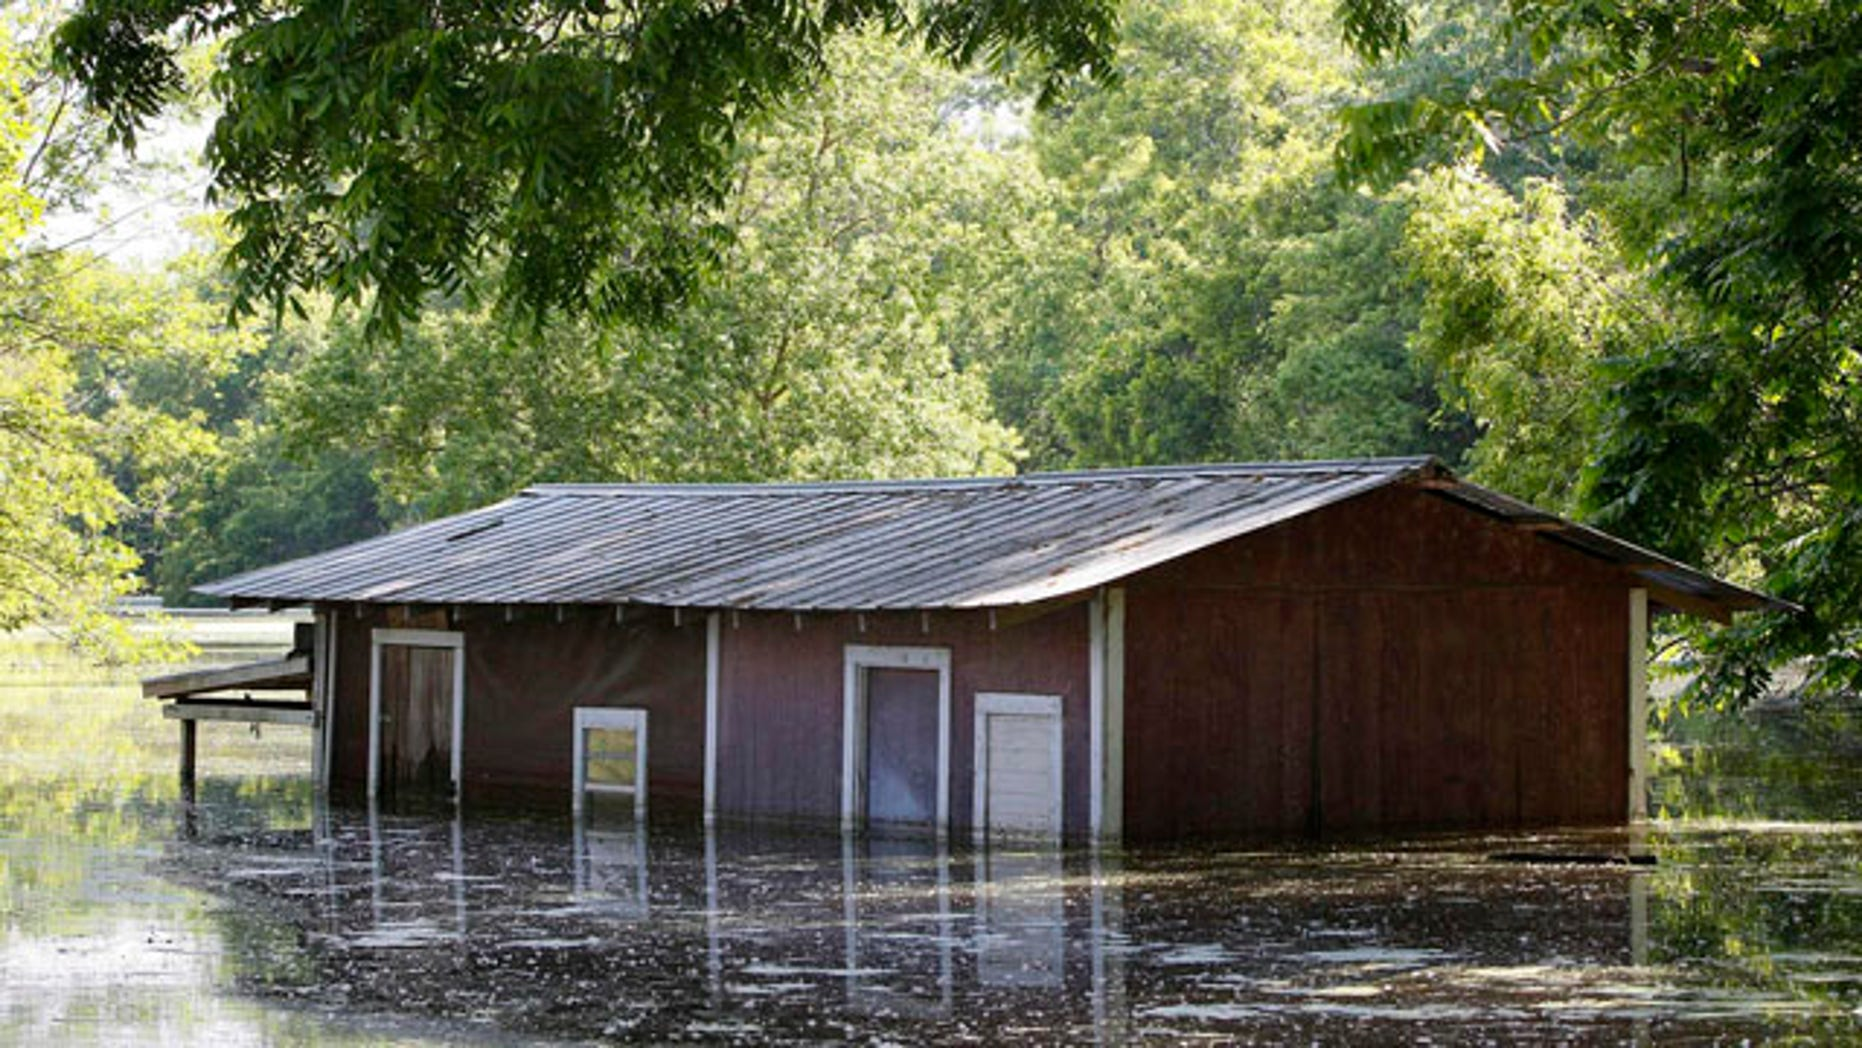 May 18, 2011: A partially-flooded building on the banks of the Atchafalaya River outside of the levee protection area in Simmesport, La.